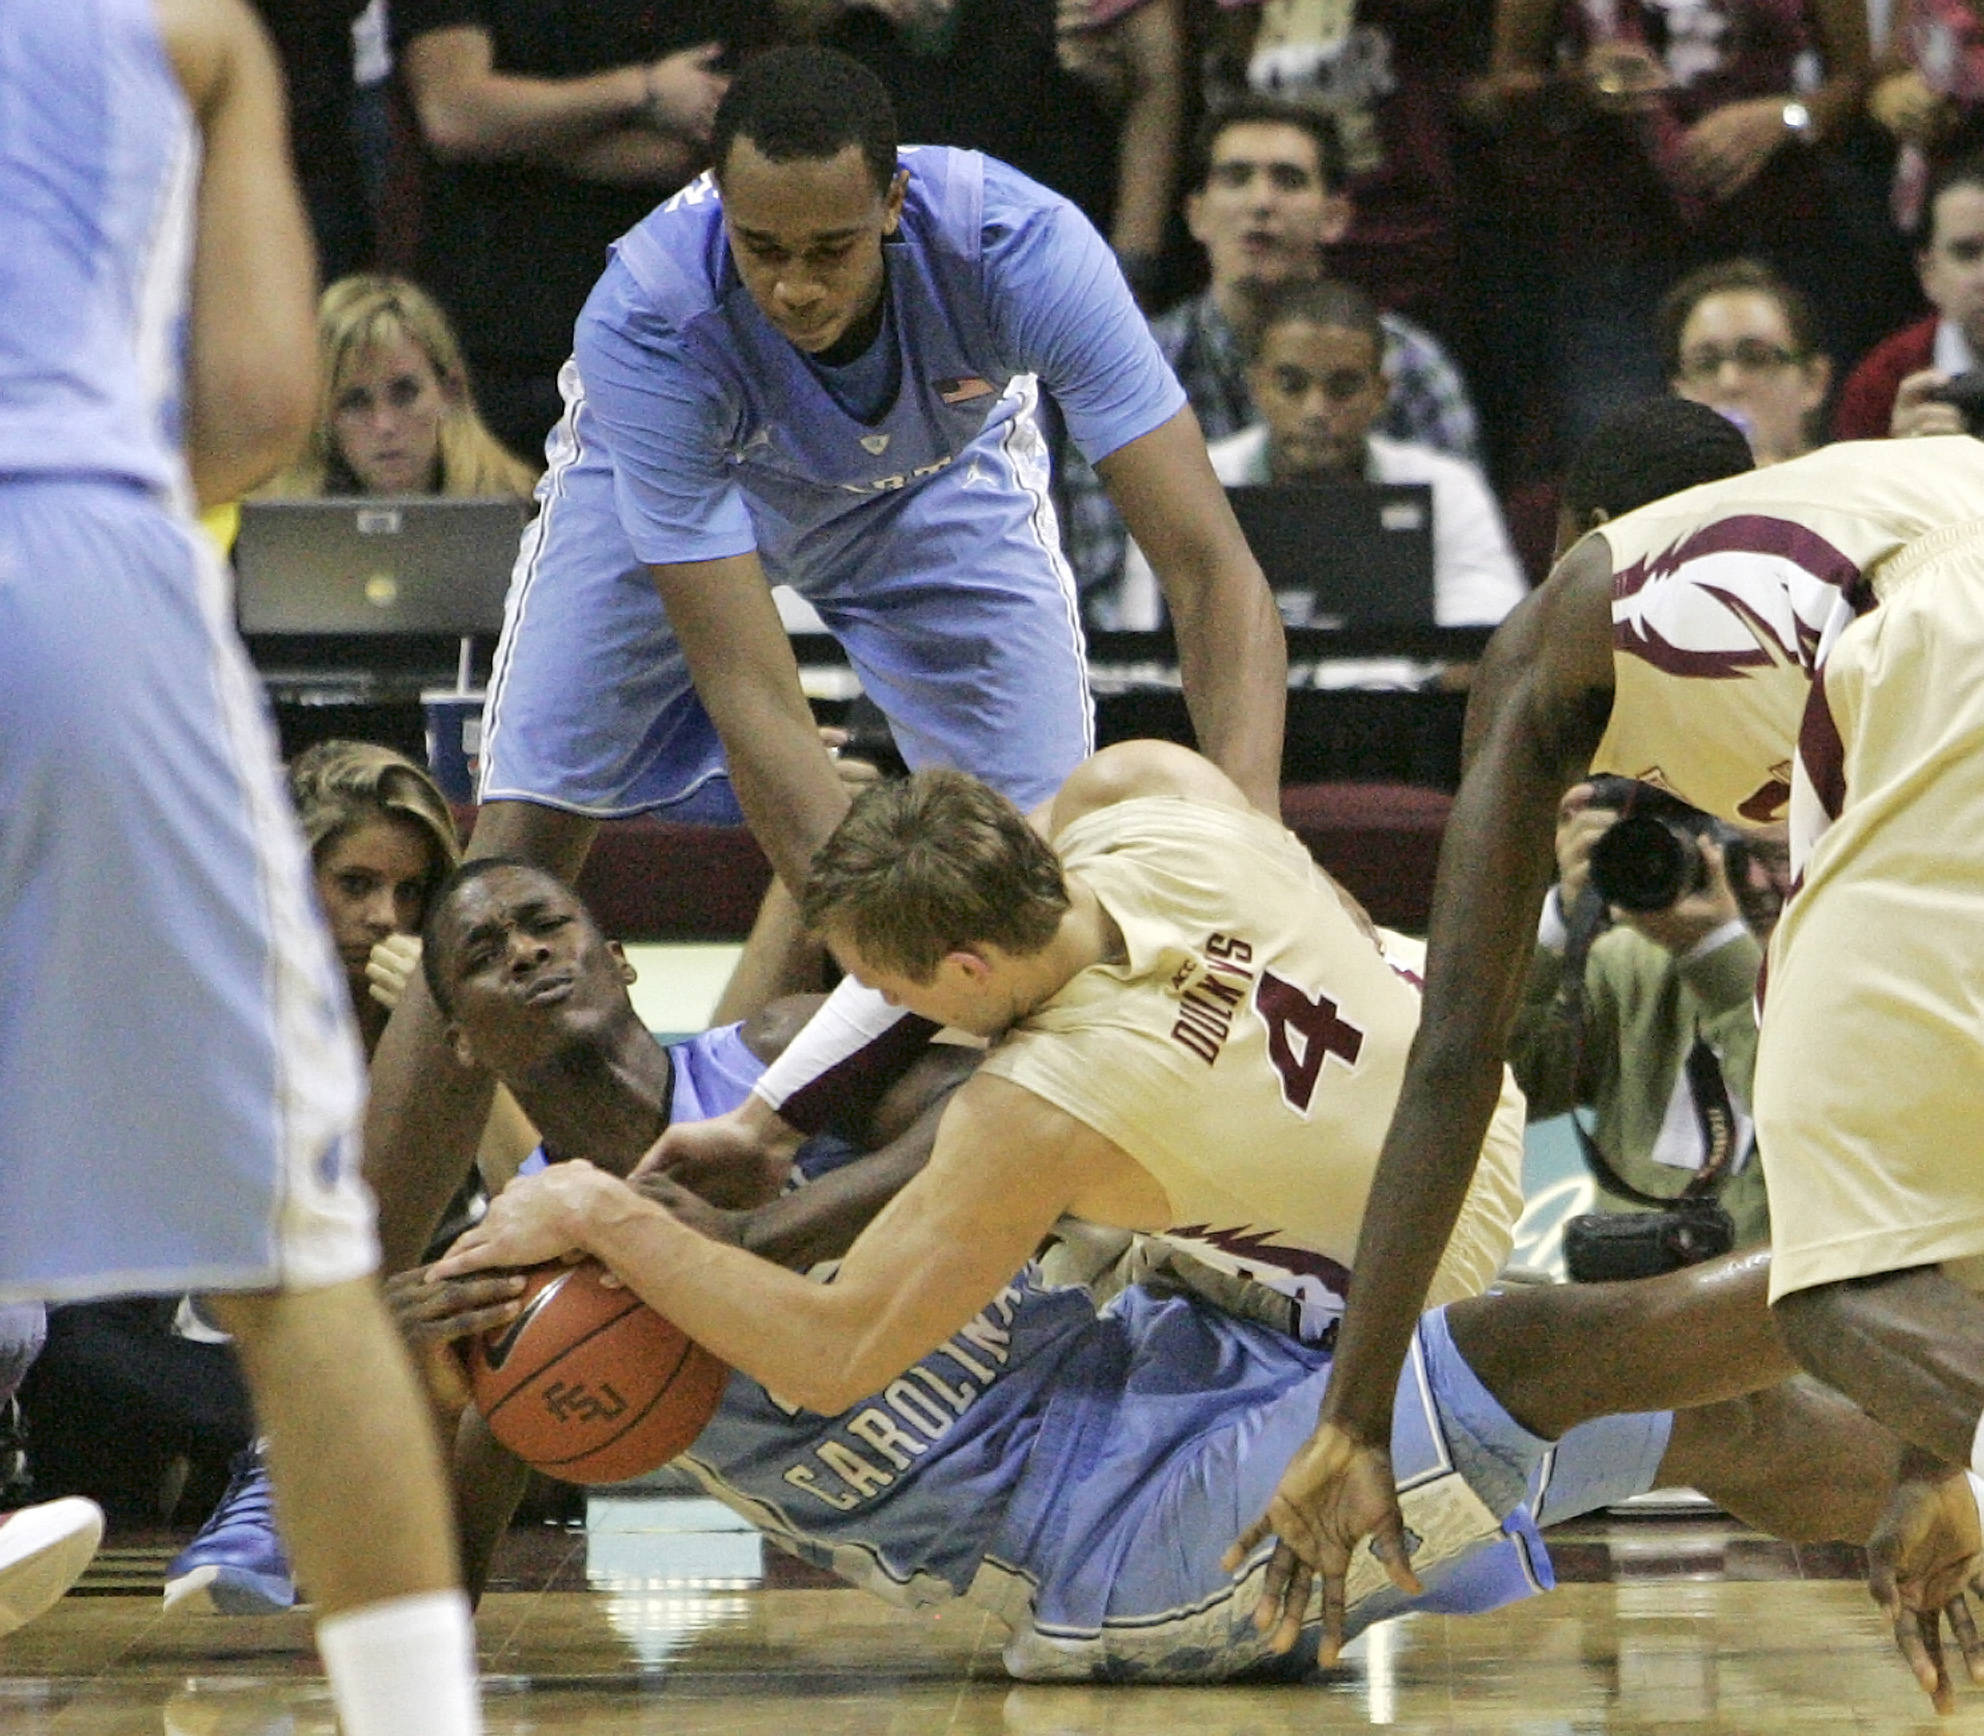 Florida State's Deividas Dulkys (4) fights North Carolina's Harrison Barnes for a loose ball as Barnes teammate John Henson tries to help out during the second half of an NCAA college basketball game,  Saturday, Jan. 14, 2012, in Tallahassee, Fla.(AP Photo/Steve Cannon)